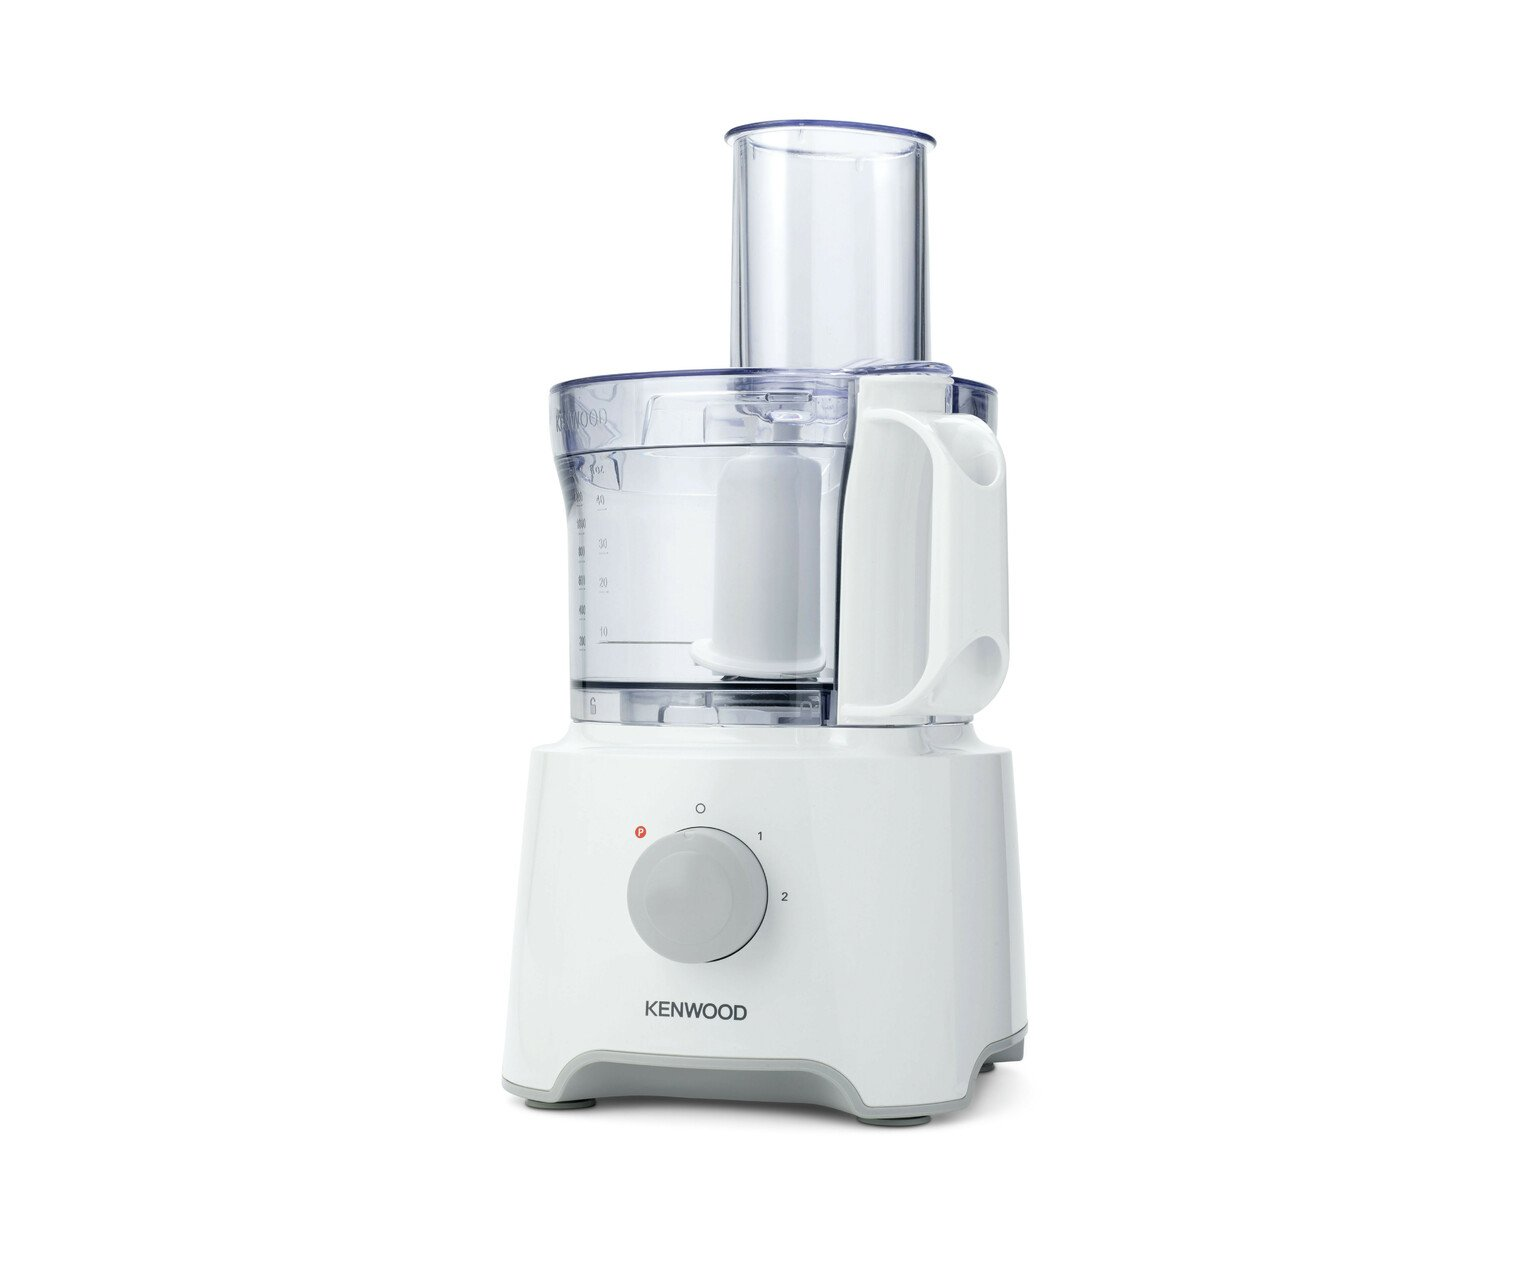 Kenwood MultiPro Compact Food Processor FDP301WH - White